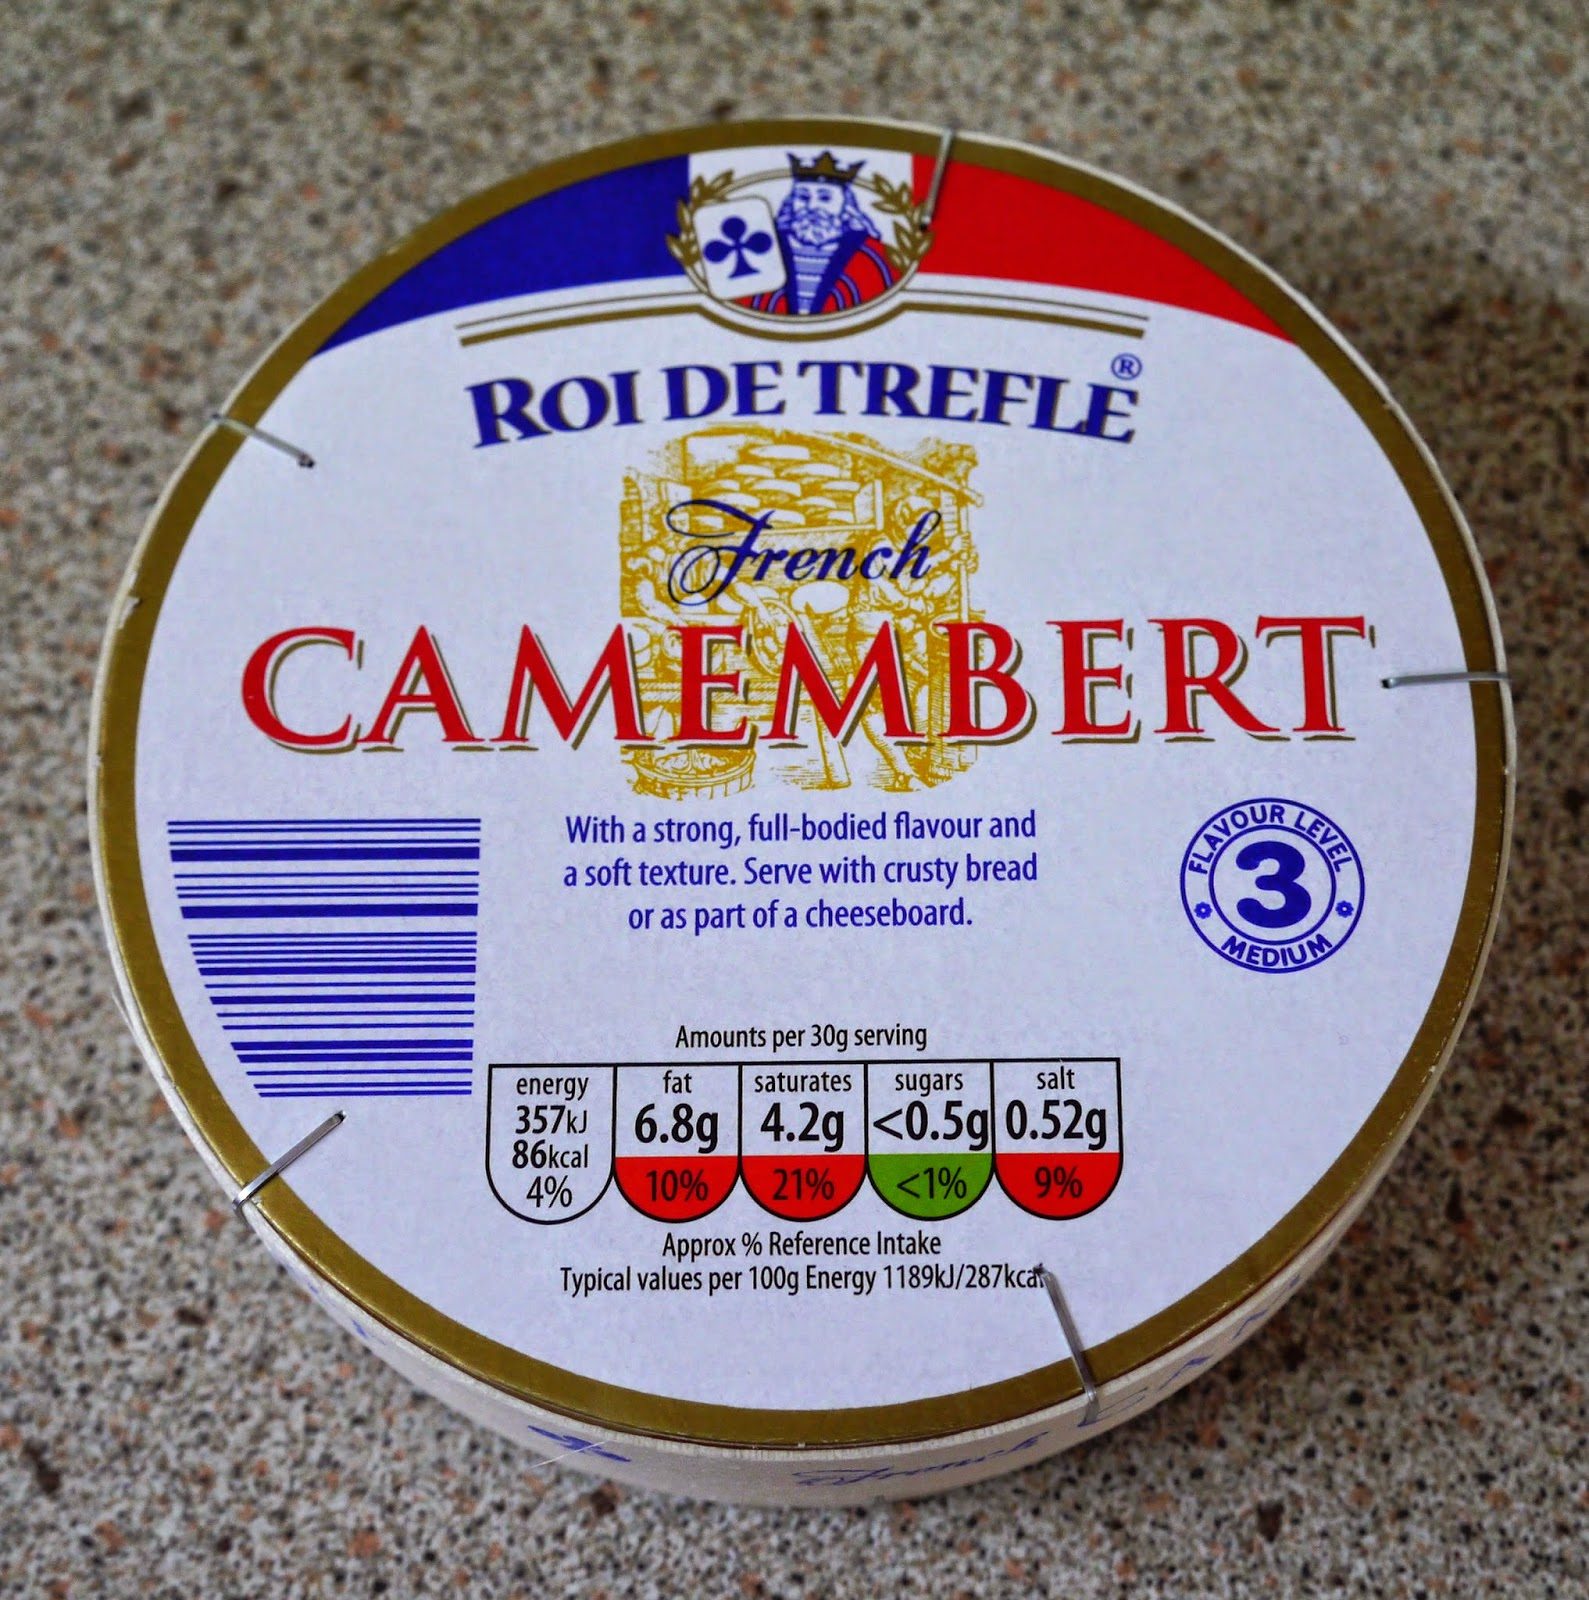 how to make baked camembert in breadcrumbs